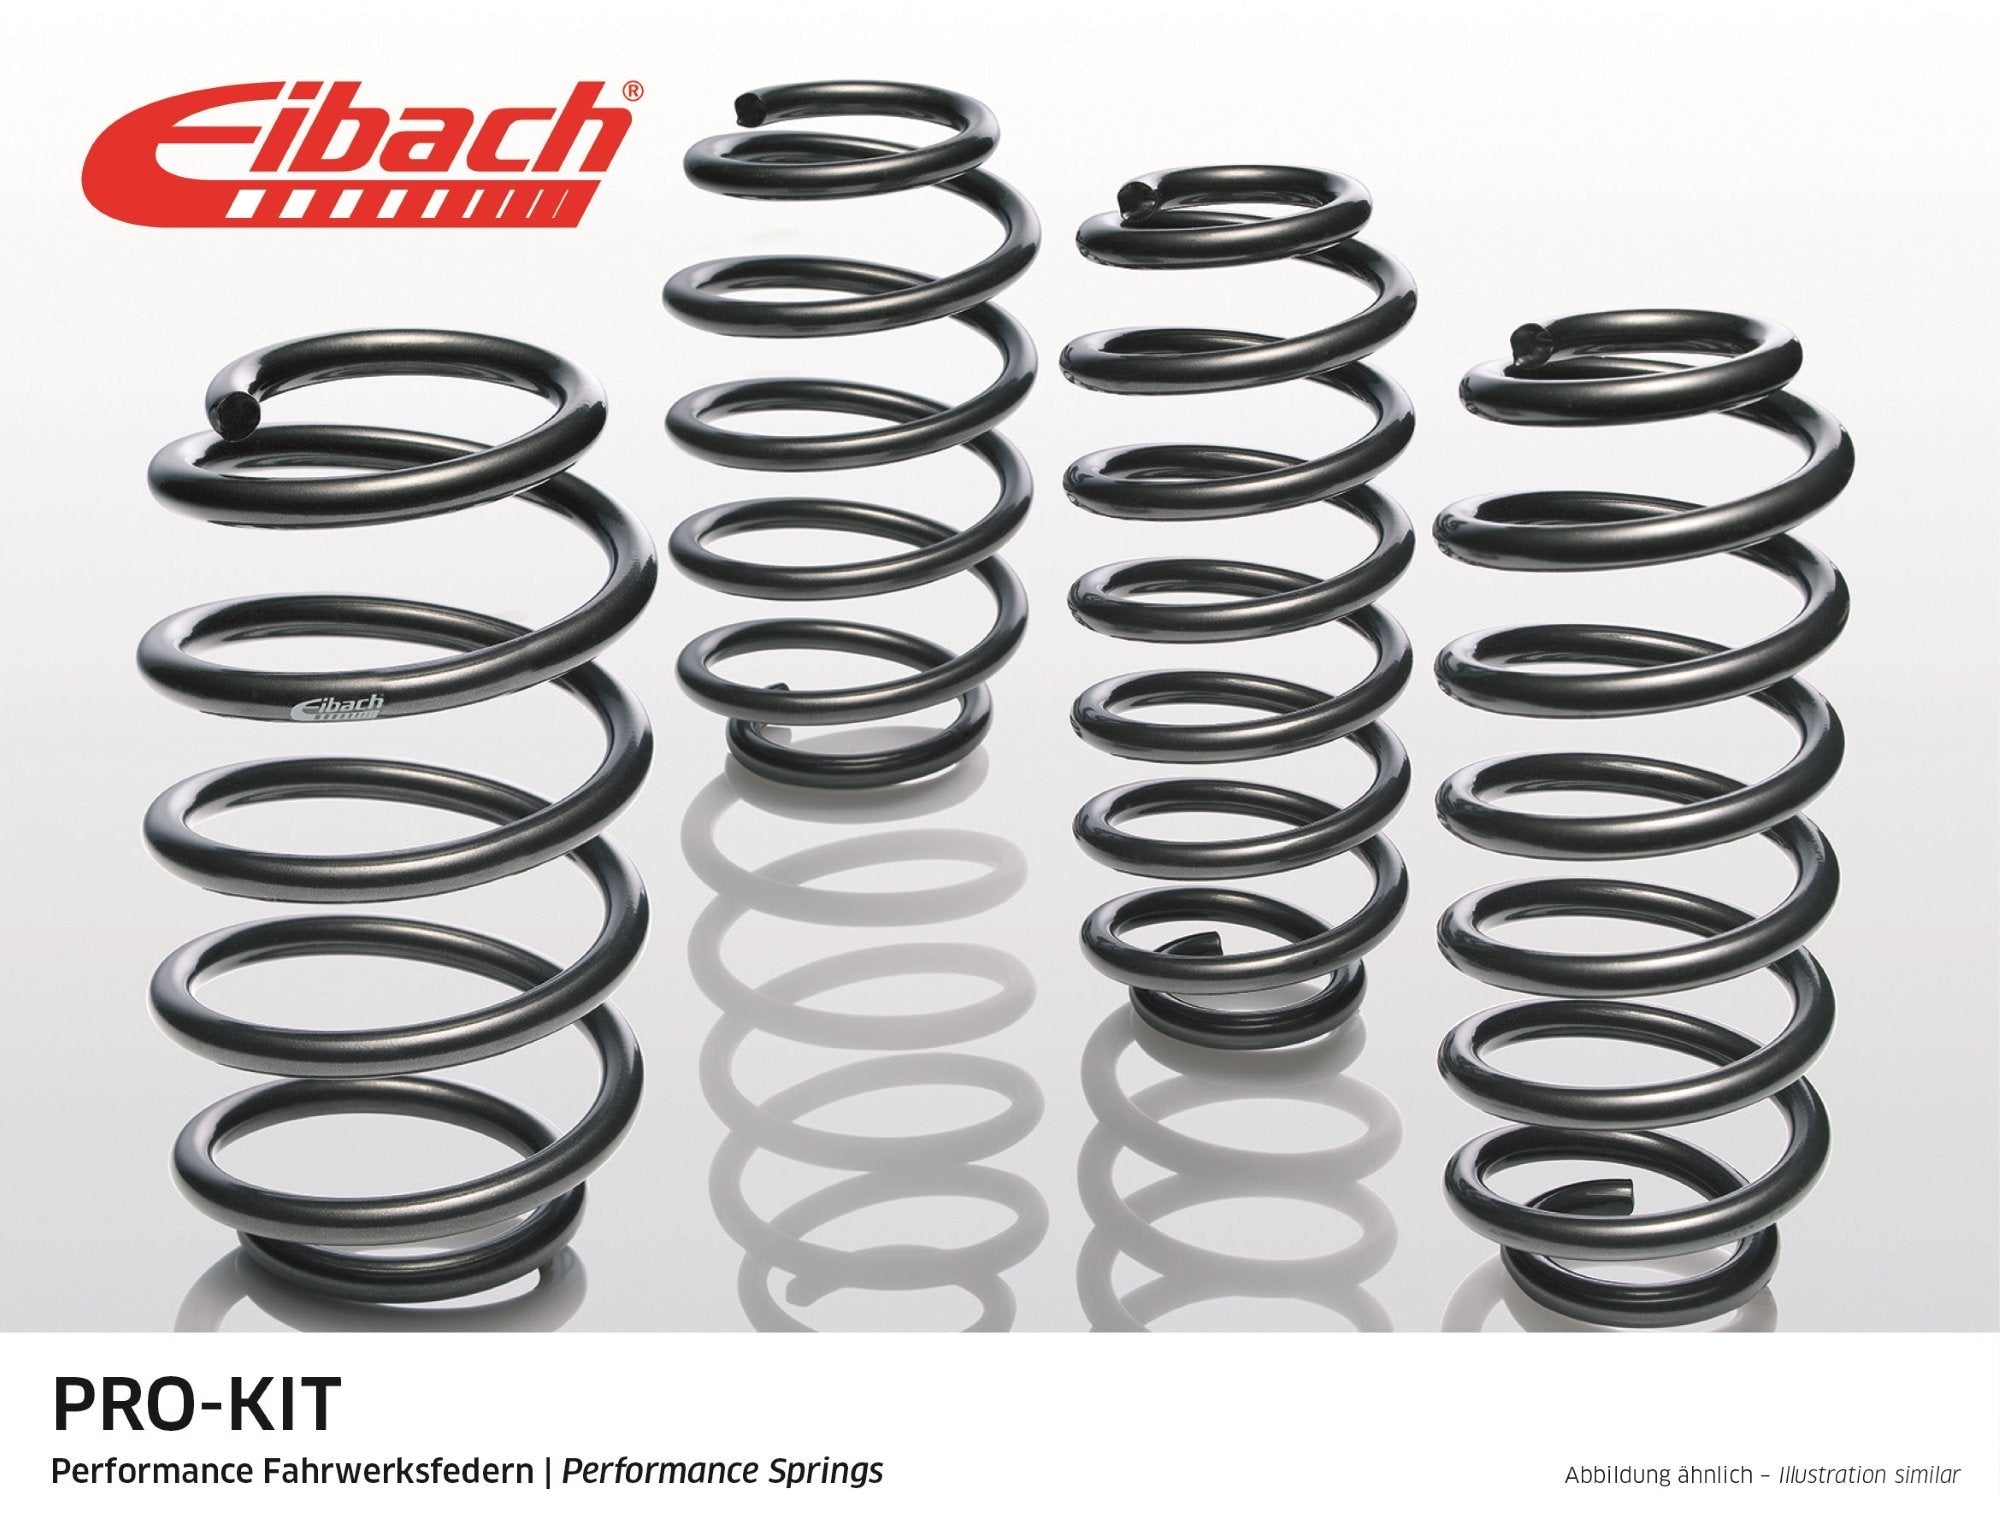 Eibach Mercedes Benz C Class Pro-Kit Performance Spring Kit